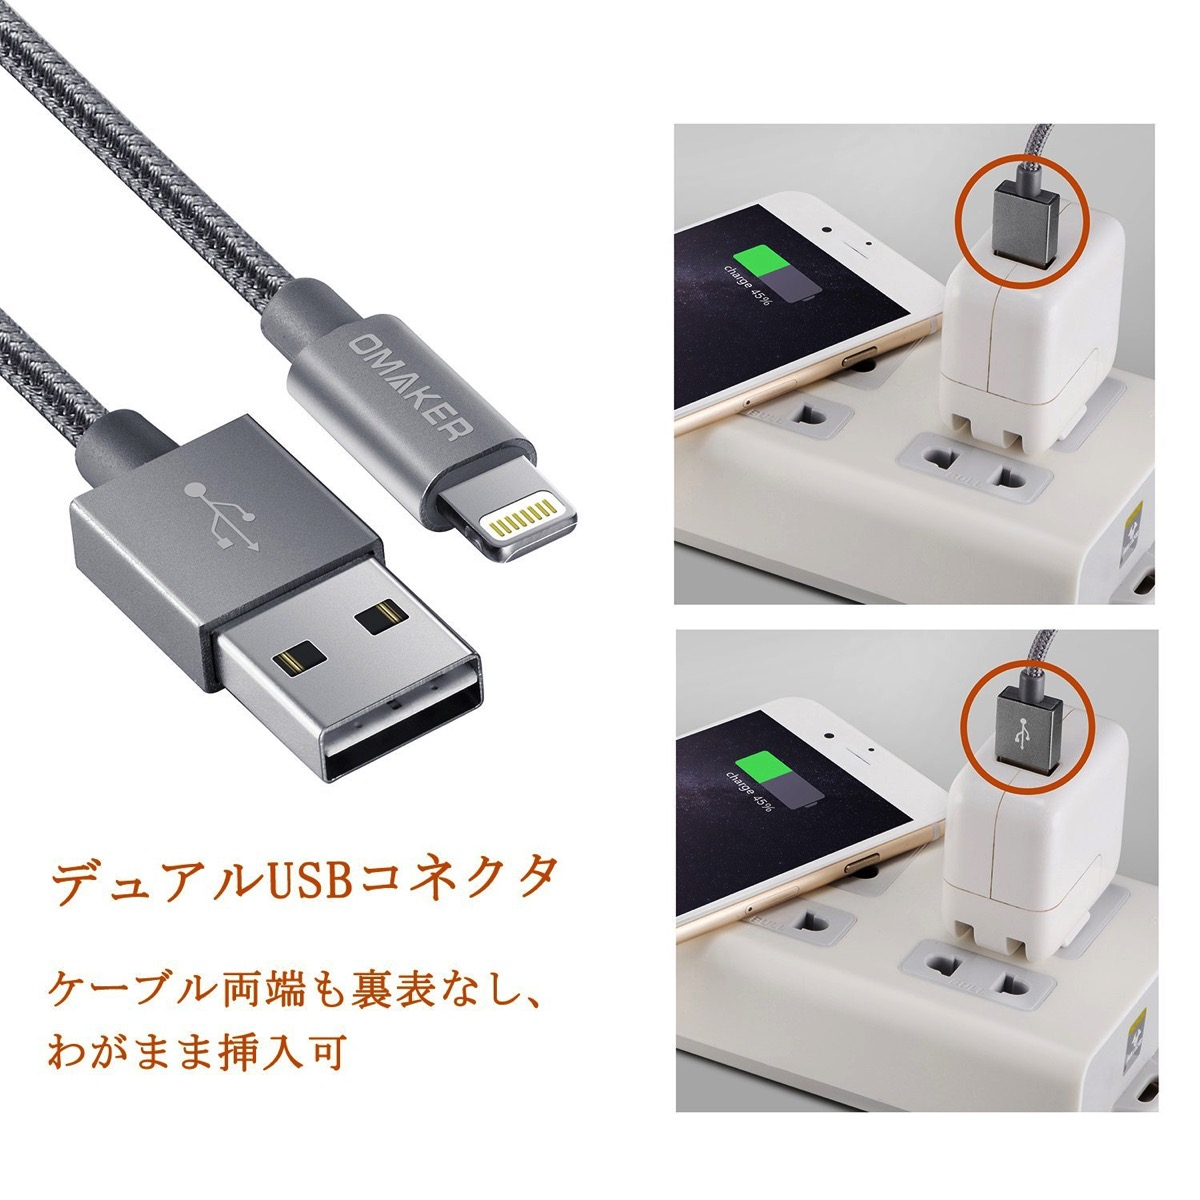 Omaker lightning cable 600yen off sale 2016 04 00002